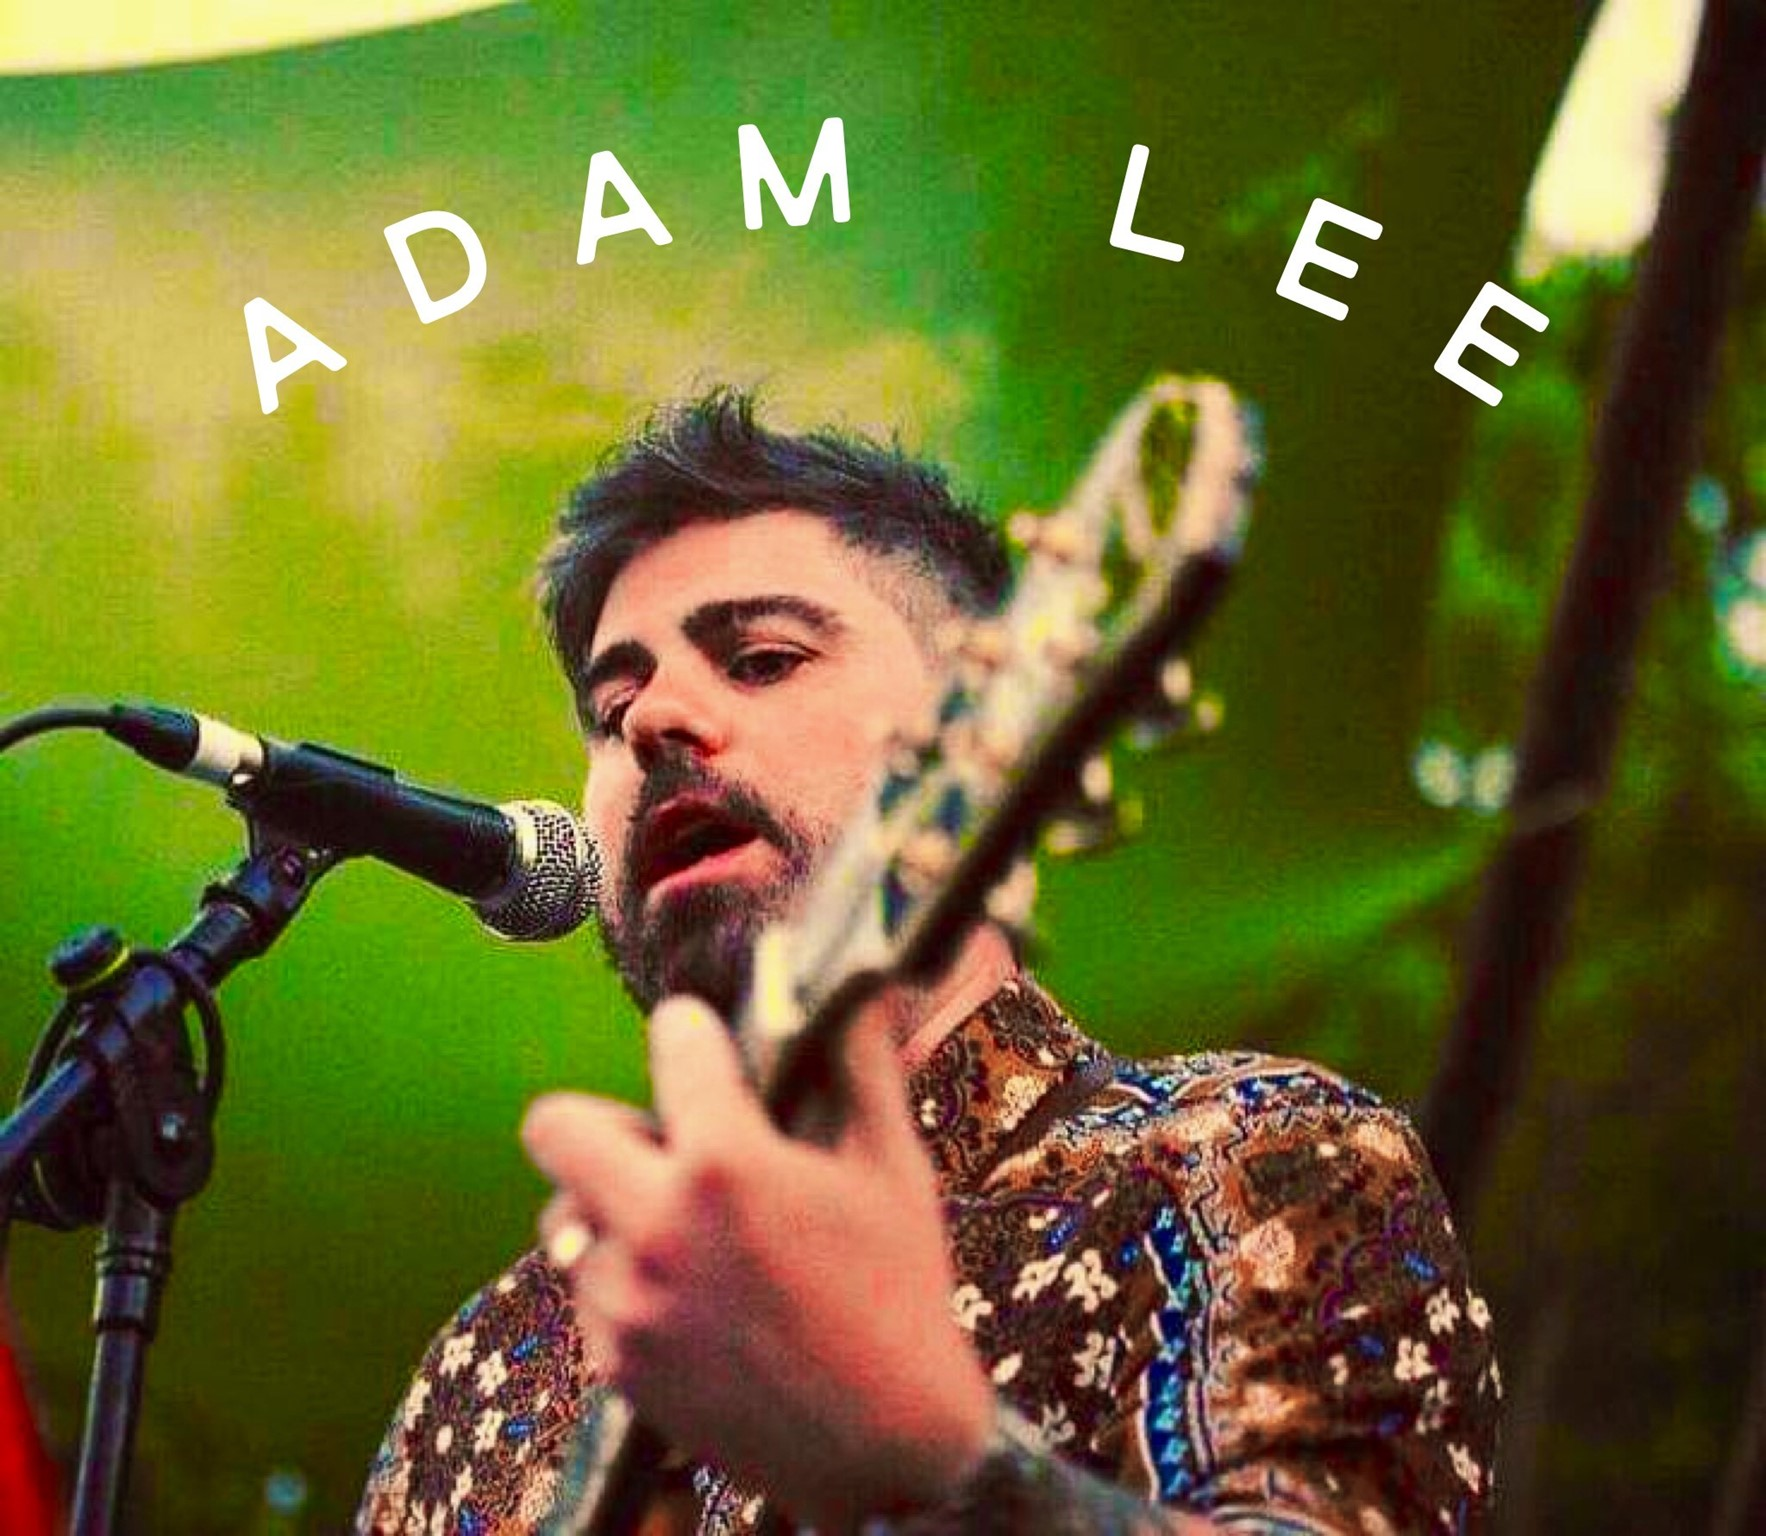 NEW YEARS EVE: Adam Lee